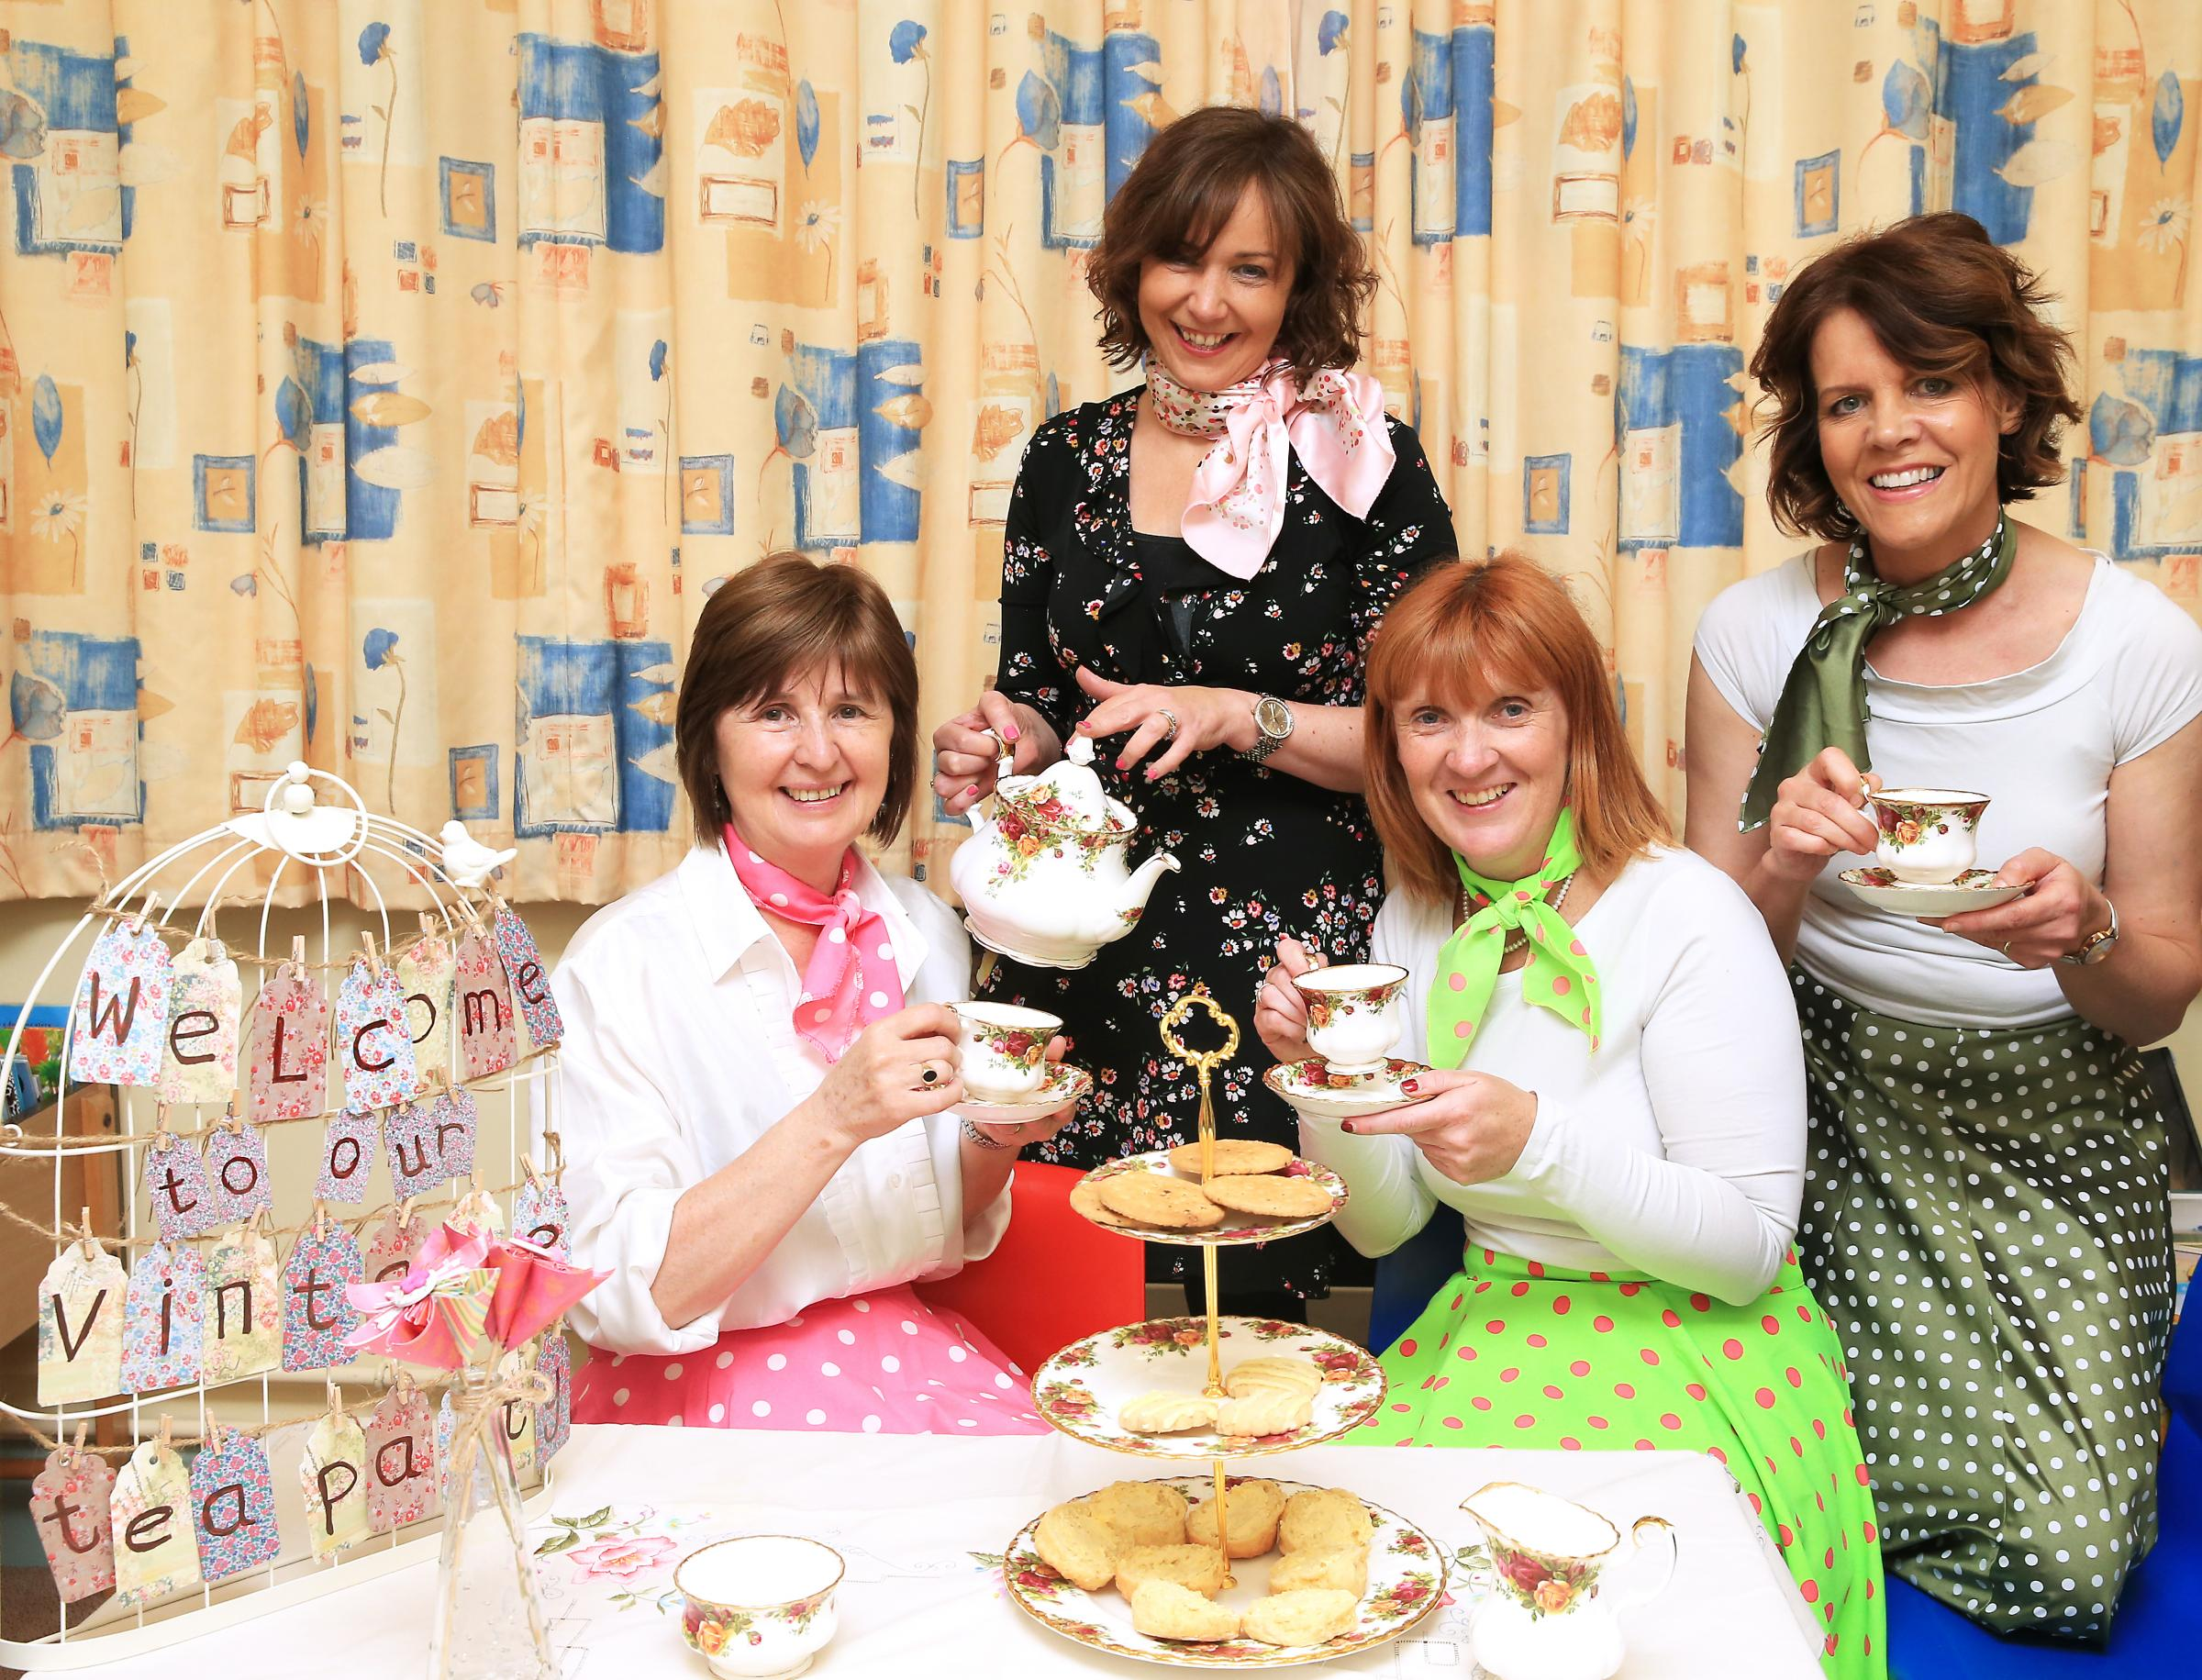 Staff at Maguiresbridge Primary School Edna McWilliams, Honor Irvine, Principal; Willene Hadden and Henrietta Fawcett getting ready for their Vintage Tea Party on Saturday, May 12 to raise money for Cancer Research UK and The North West Cancer Centre.